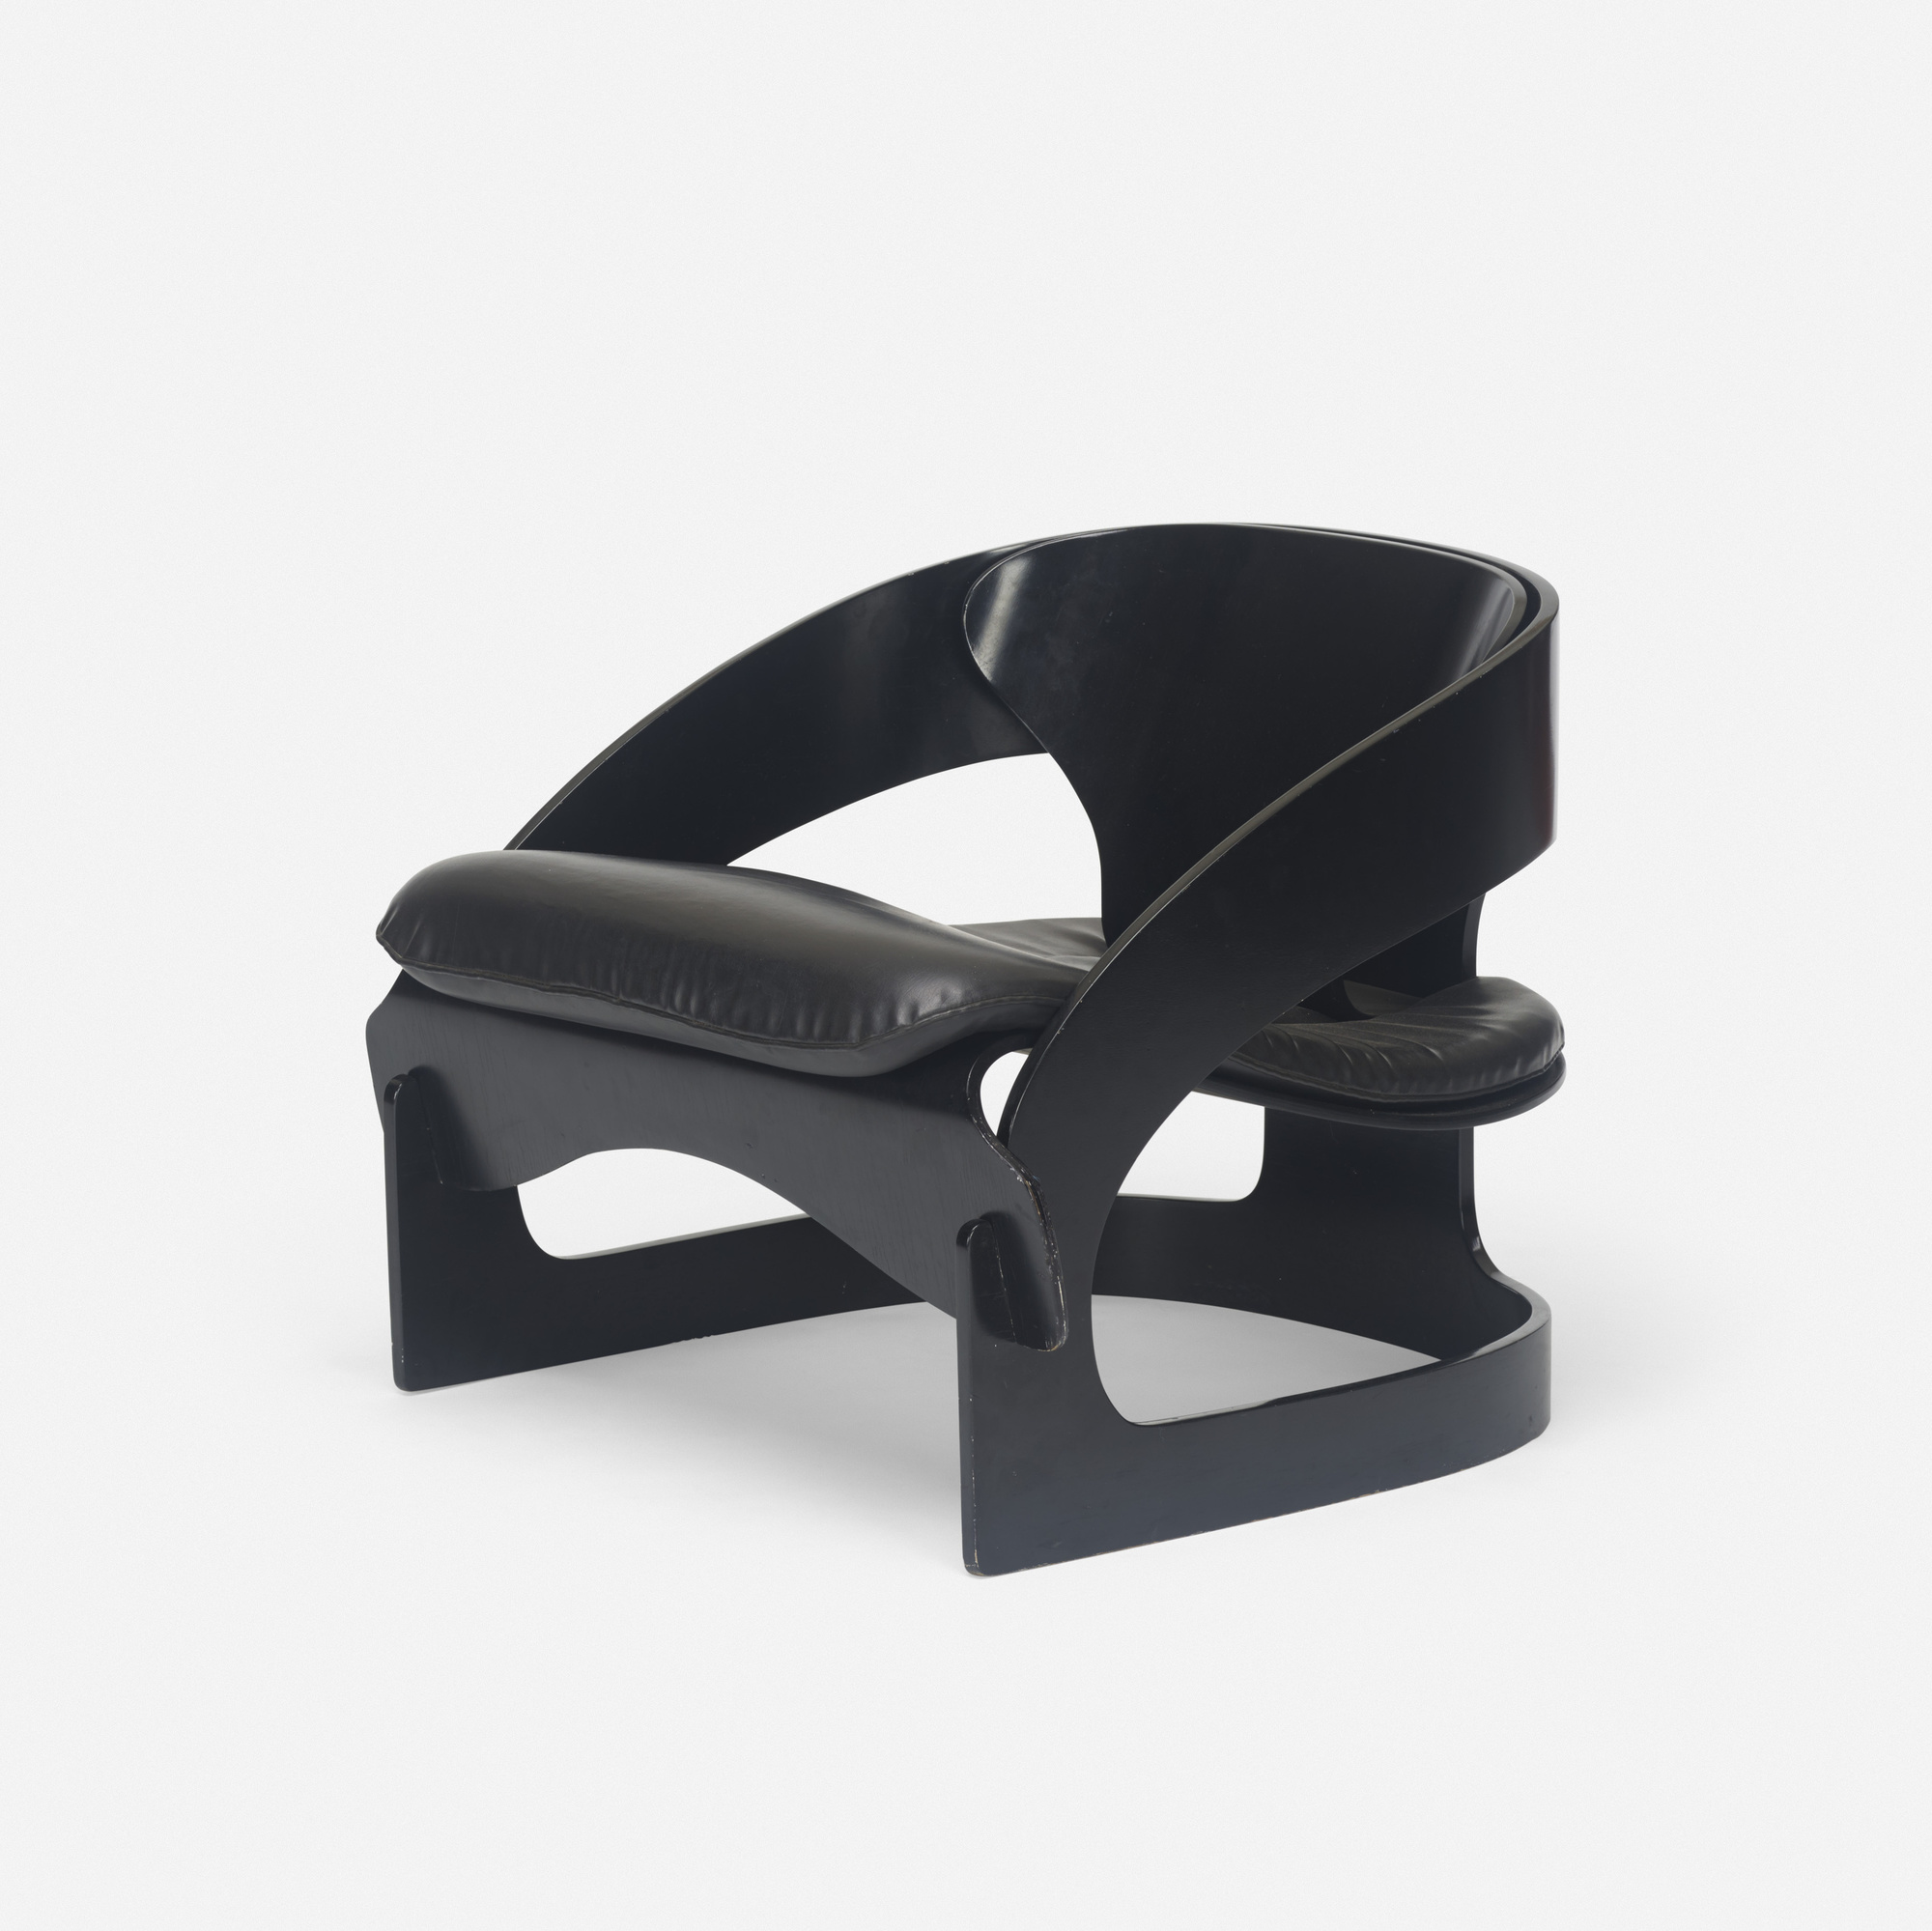 429: Joe Colombo / Small Armchair with Curved Elements (1 of 3)